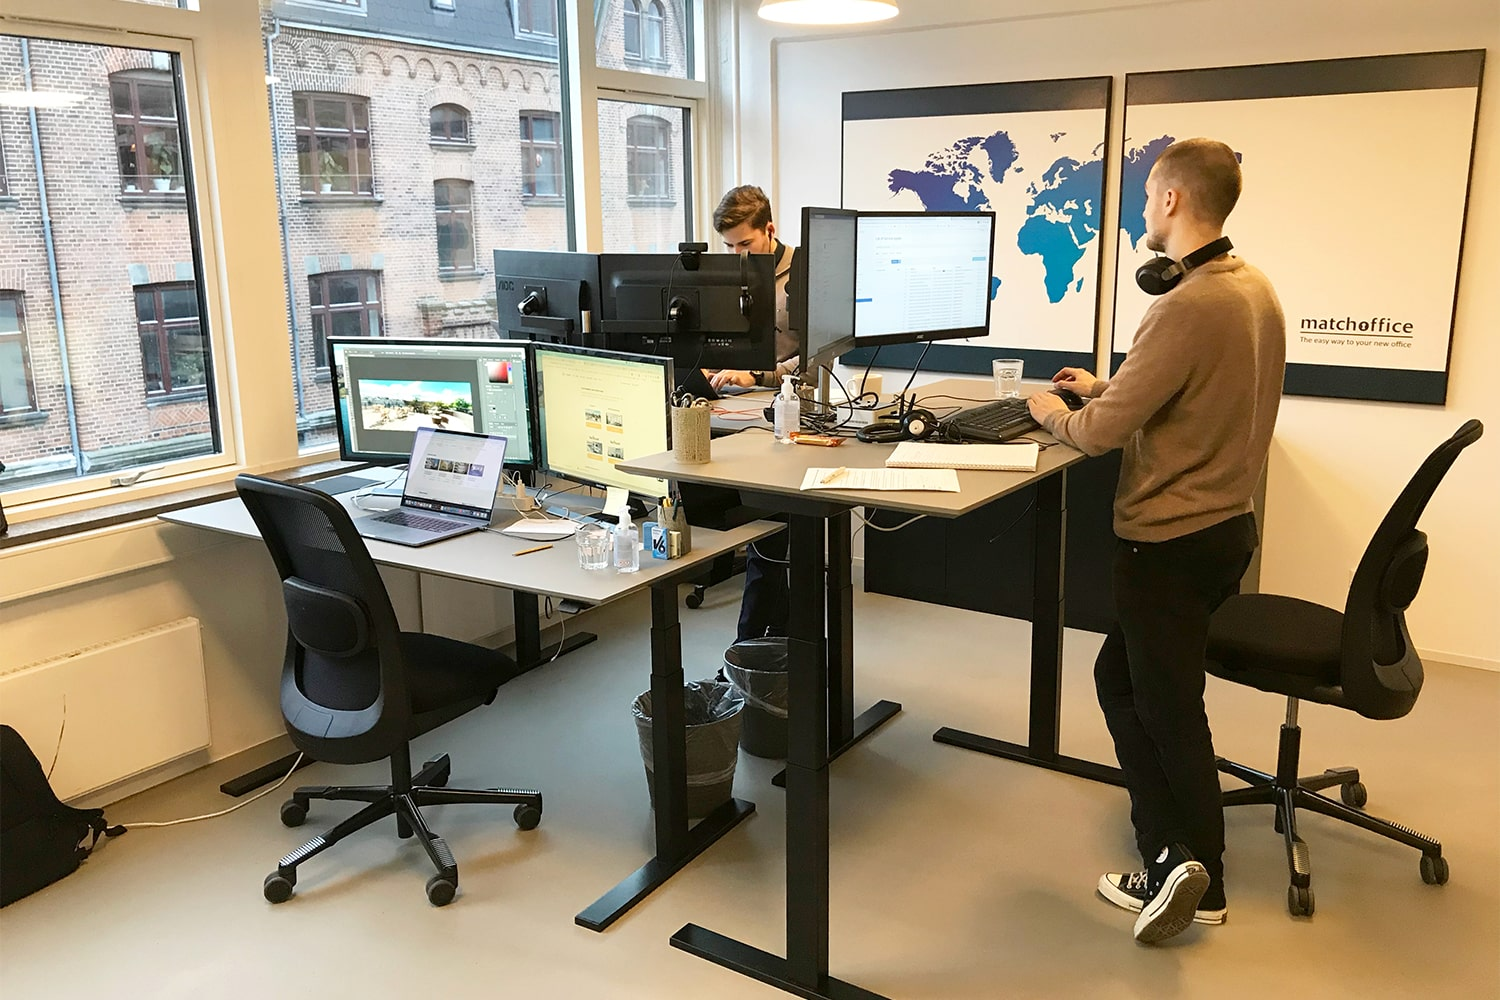 The Danish office